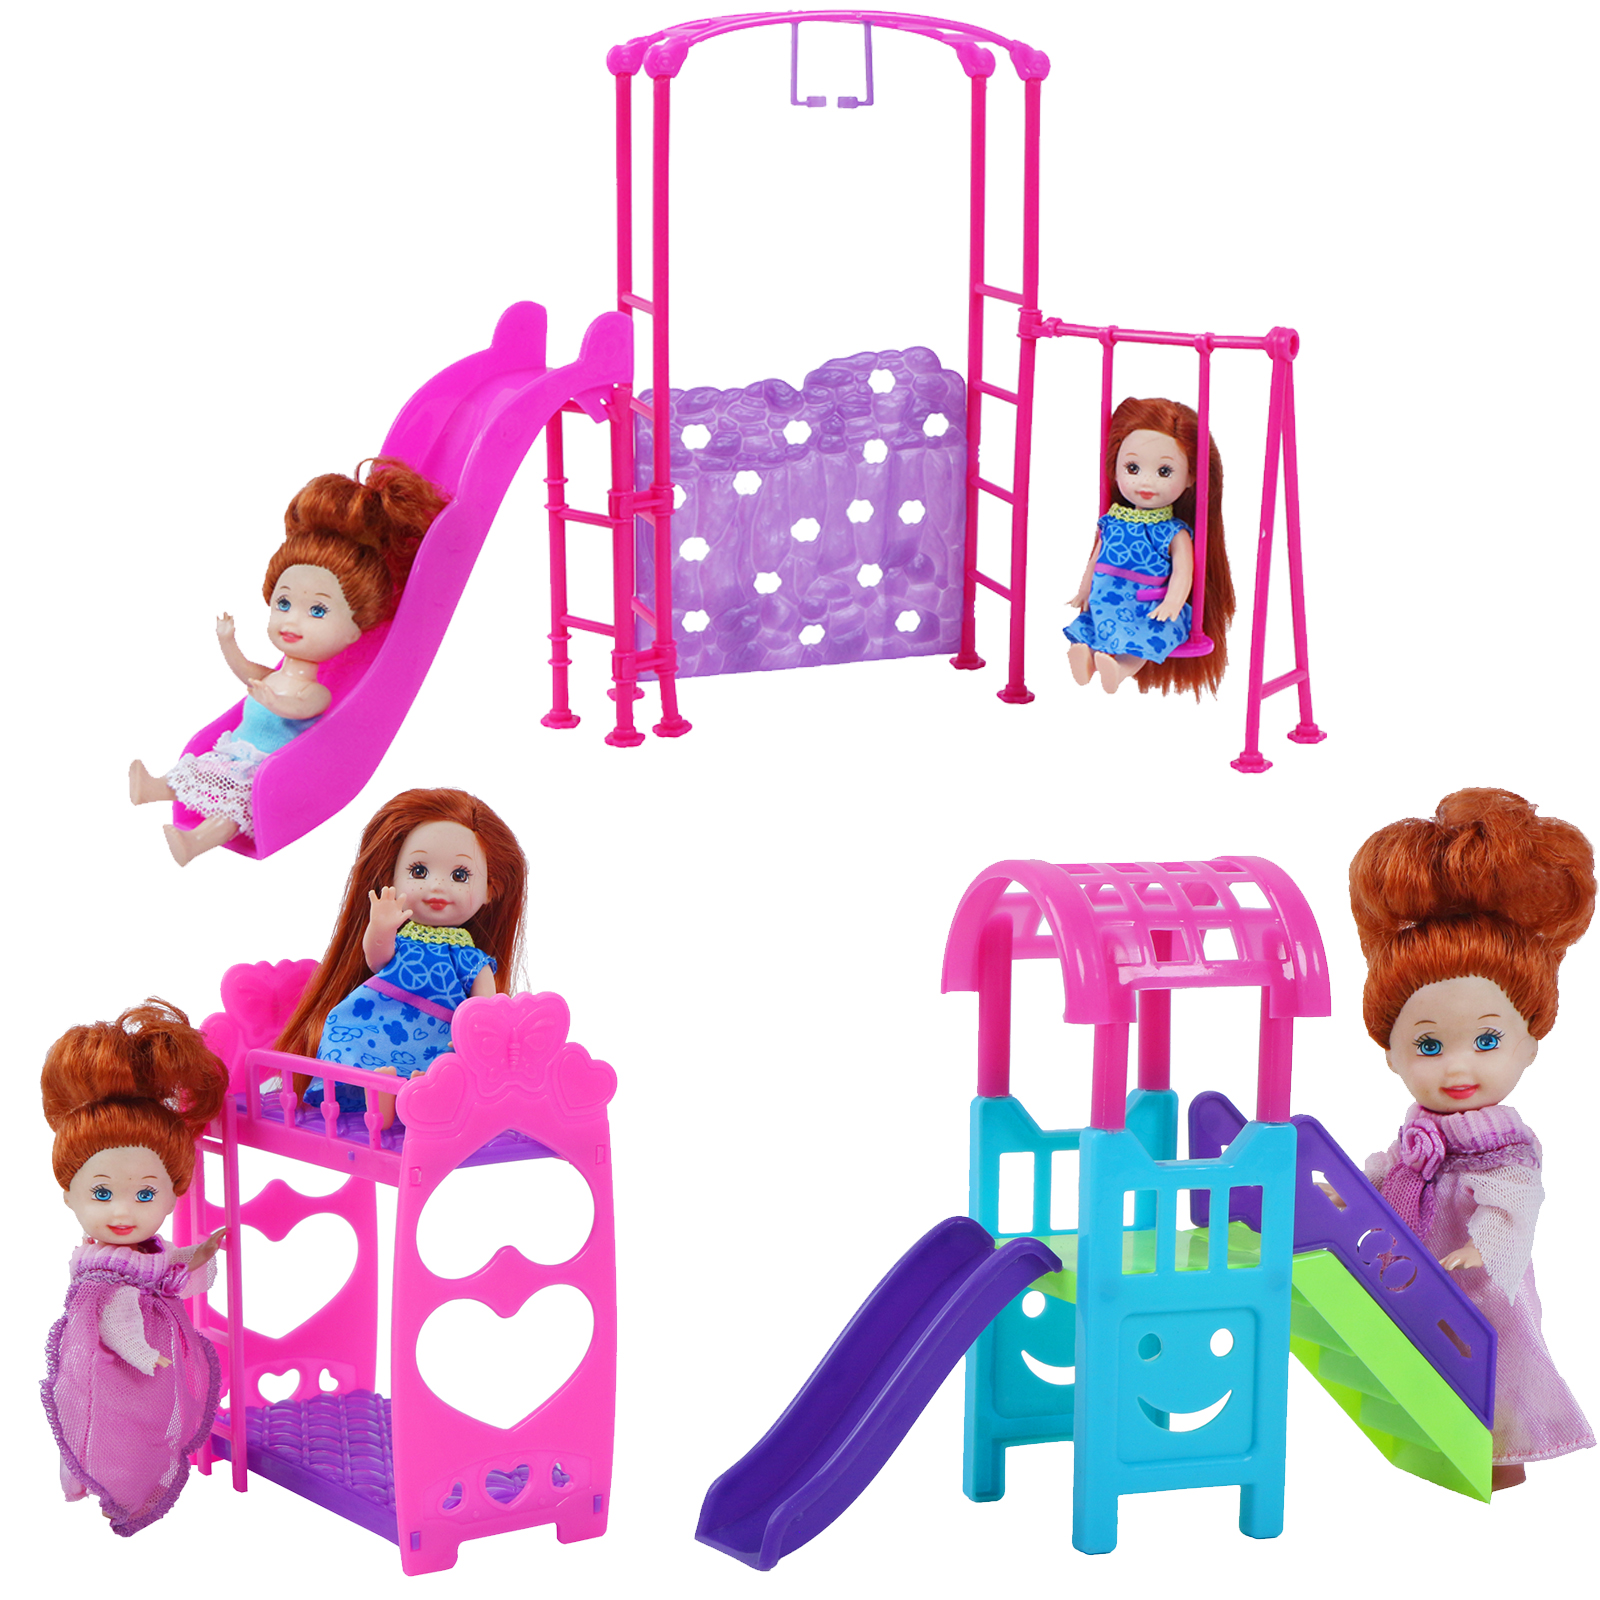 Cute Nursery Dollhouse Pink infant Bunk Bed Swing Slide Furniture for Barbie Doll Sister Kelly for Simba Doll Accessories(China)